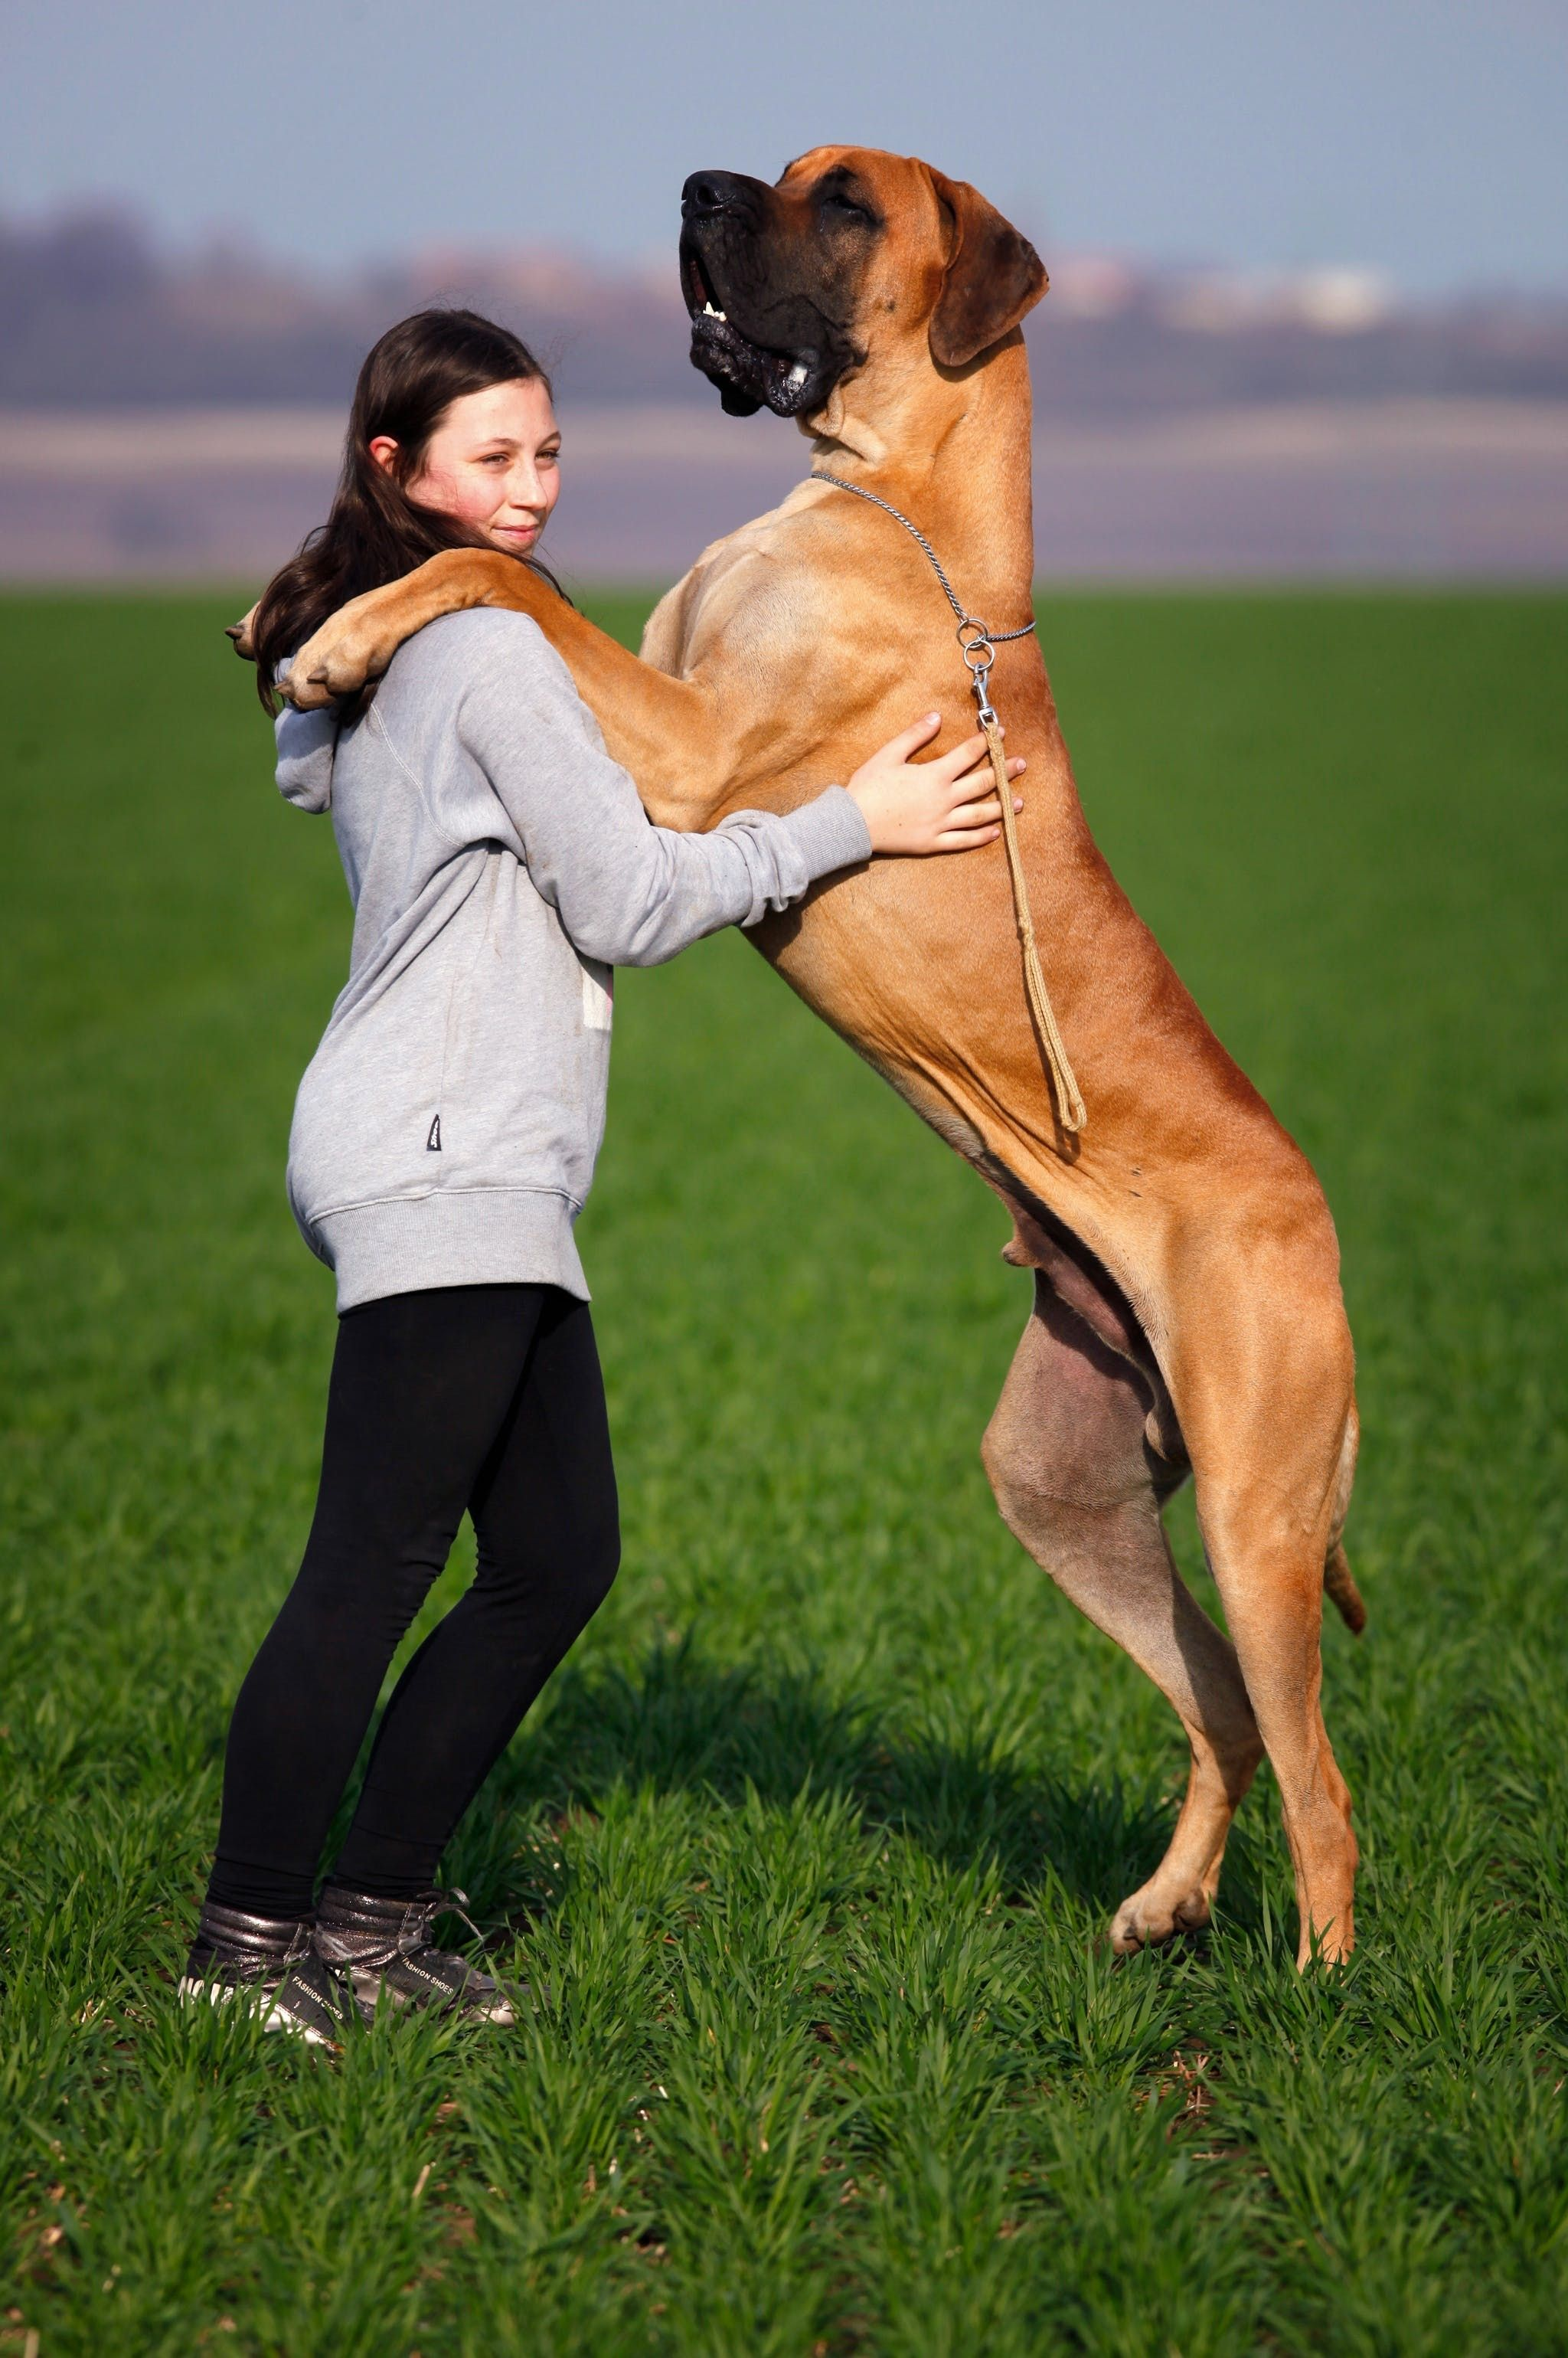 Classy Dog Doglovers With Images Dog Training Obedience